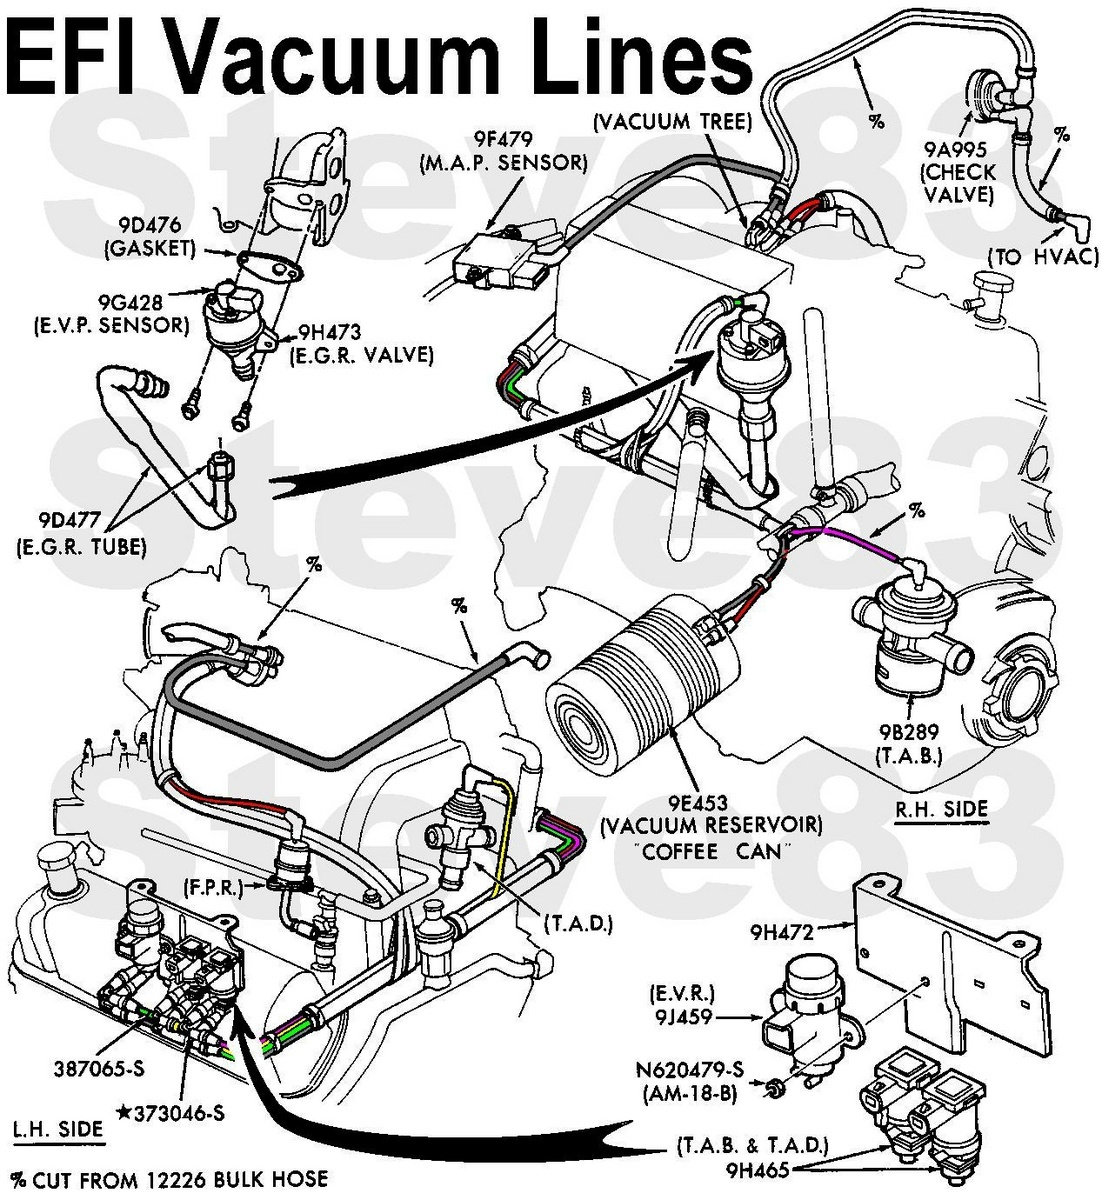 95 f250 pickup wiring diagram pdf with Discussion T20569 Ds546606 on Duo Therm 65925 080 Furnace Wiring Diagram as well 2005 Toyota Camry Xle Fuse Box Diagram moreover 2drud 98 Volkswagen Jetta Gls Ac Cruise Wiring Diagram in addition 1966 Mustang Wiring Diagrams as well 2000 Chevy Cavalier Ke Lights Wiring Diagram.